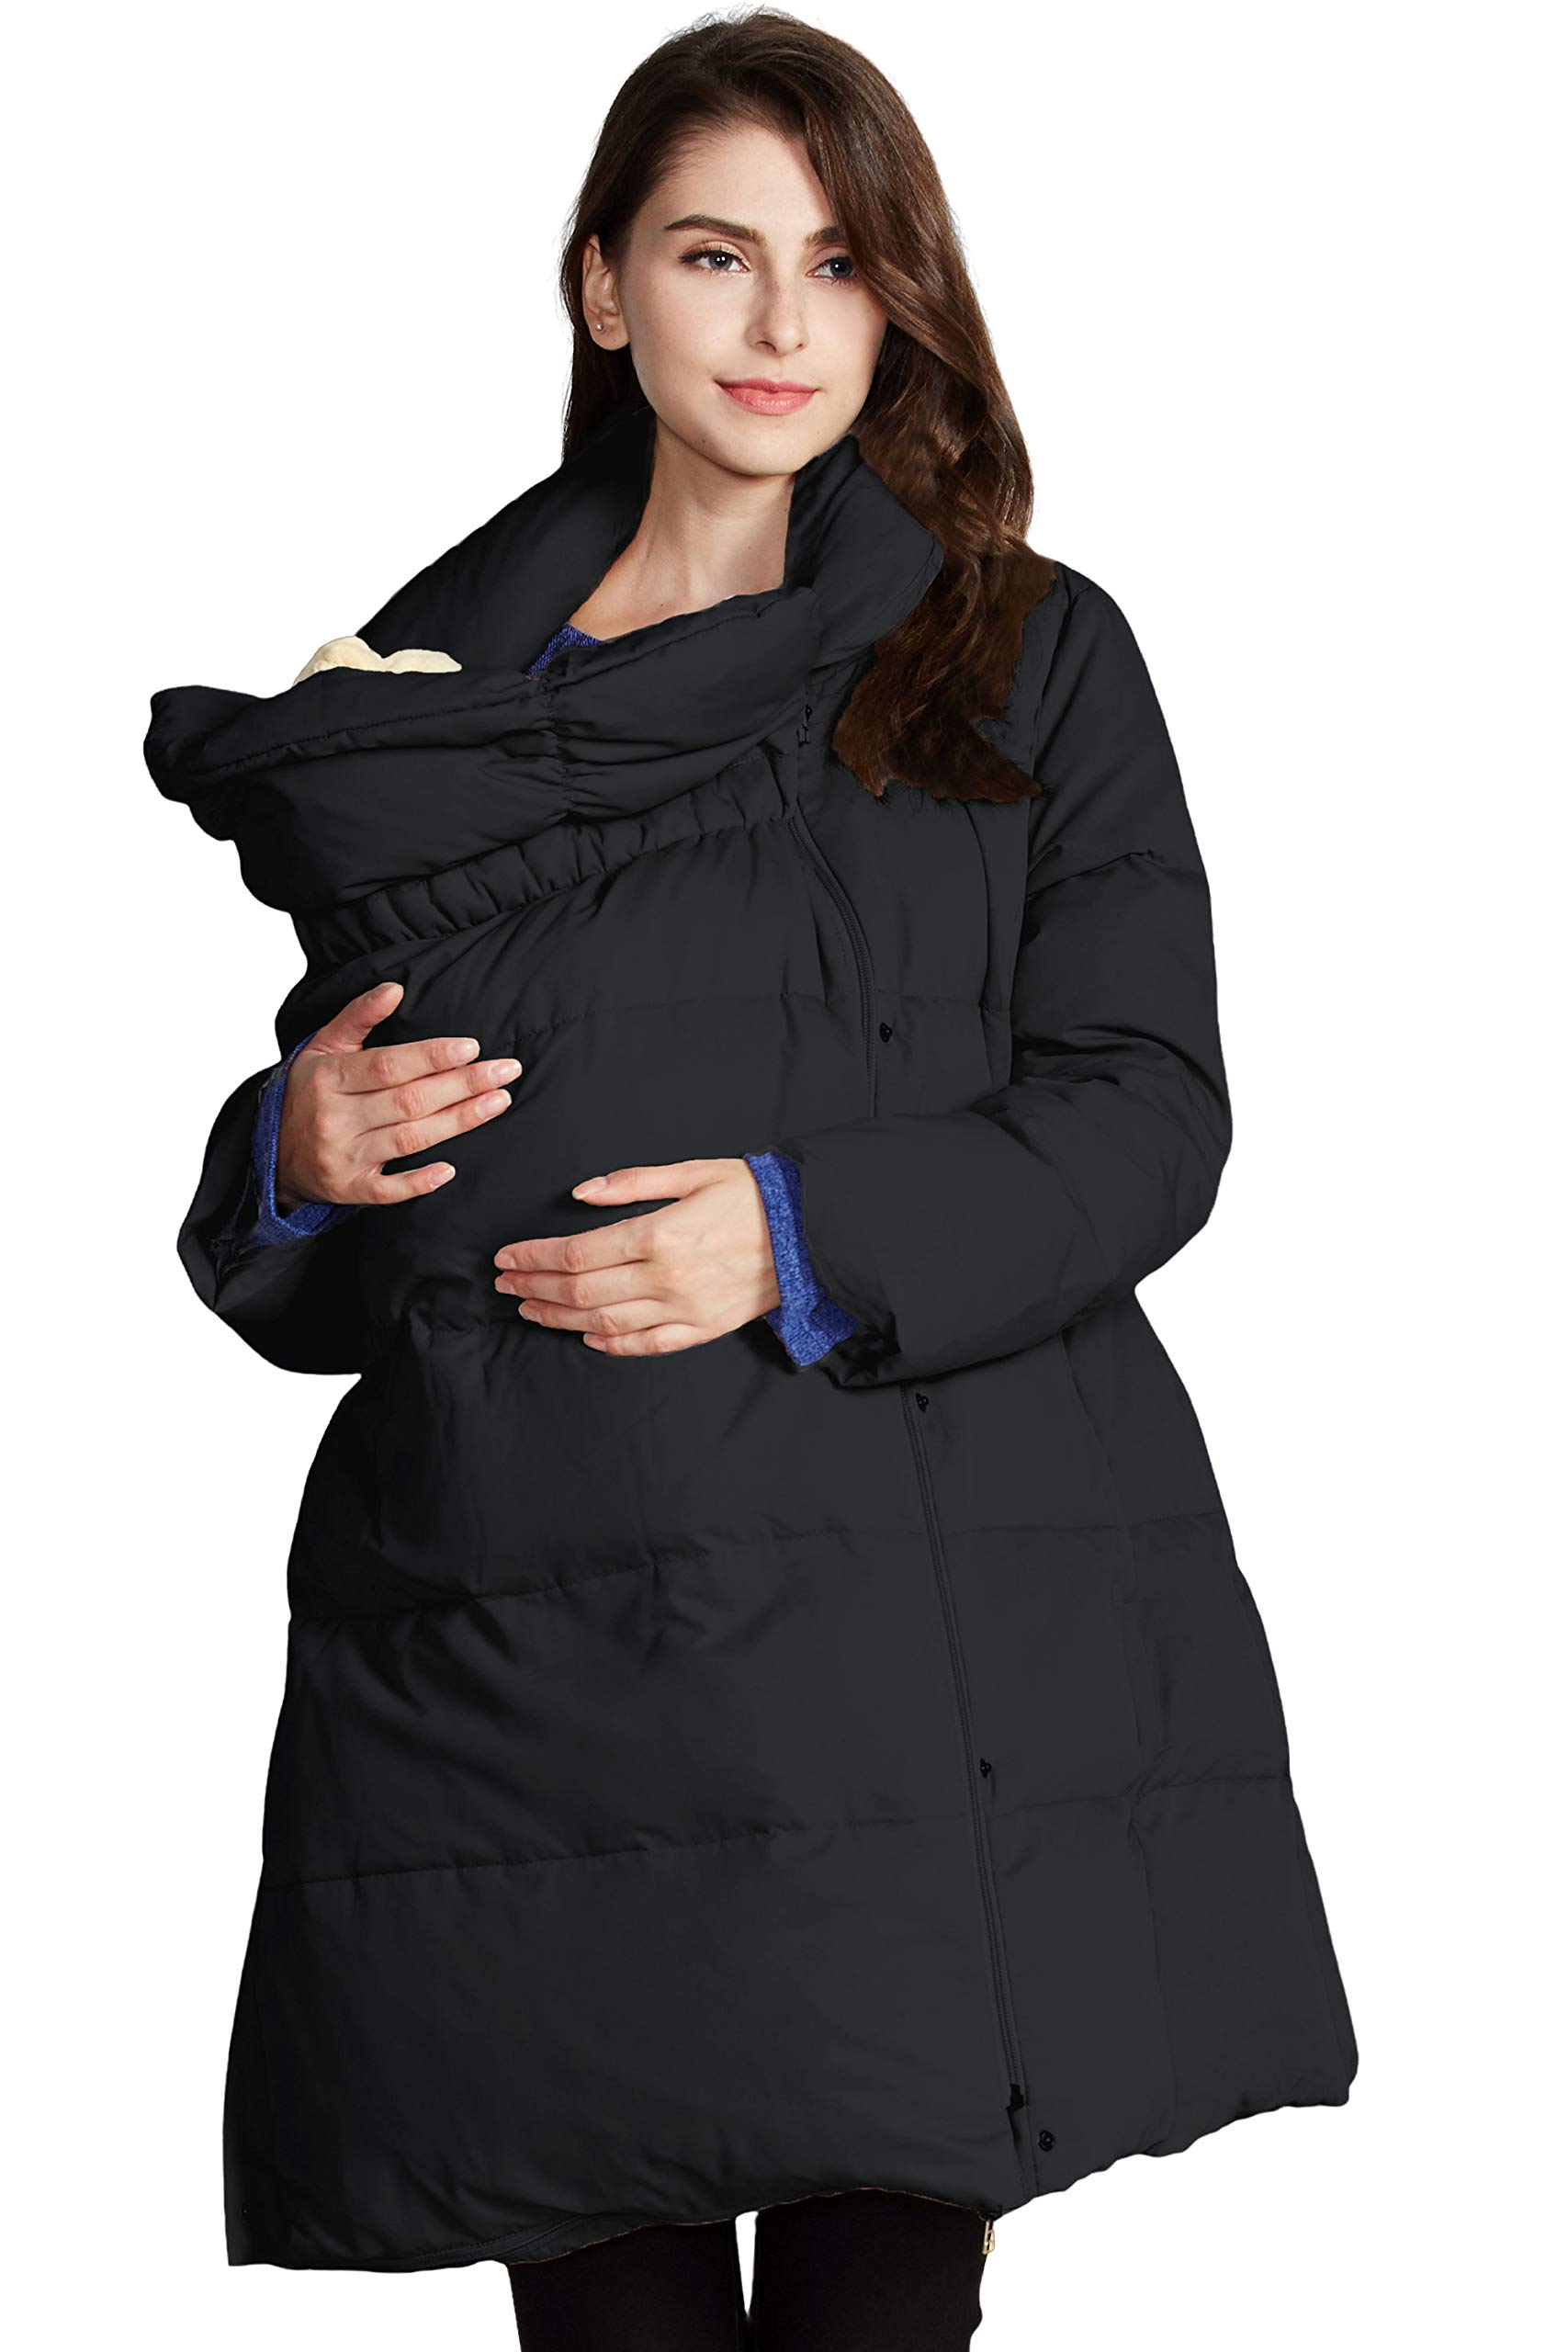 Sweet Mommy Maternity Pregnancy Baby Carrier Babywearing Down Coat Removable Panel Black, L by Sweet Mommy